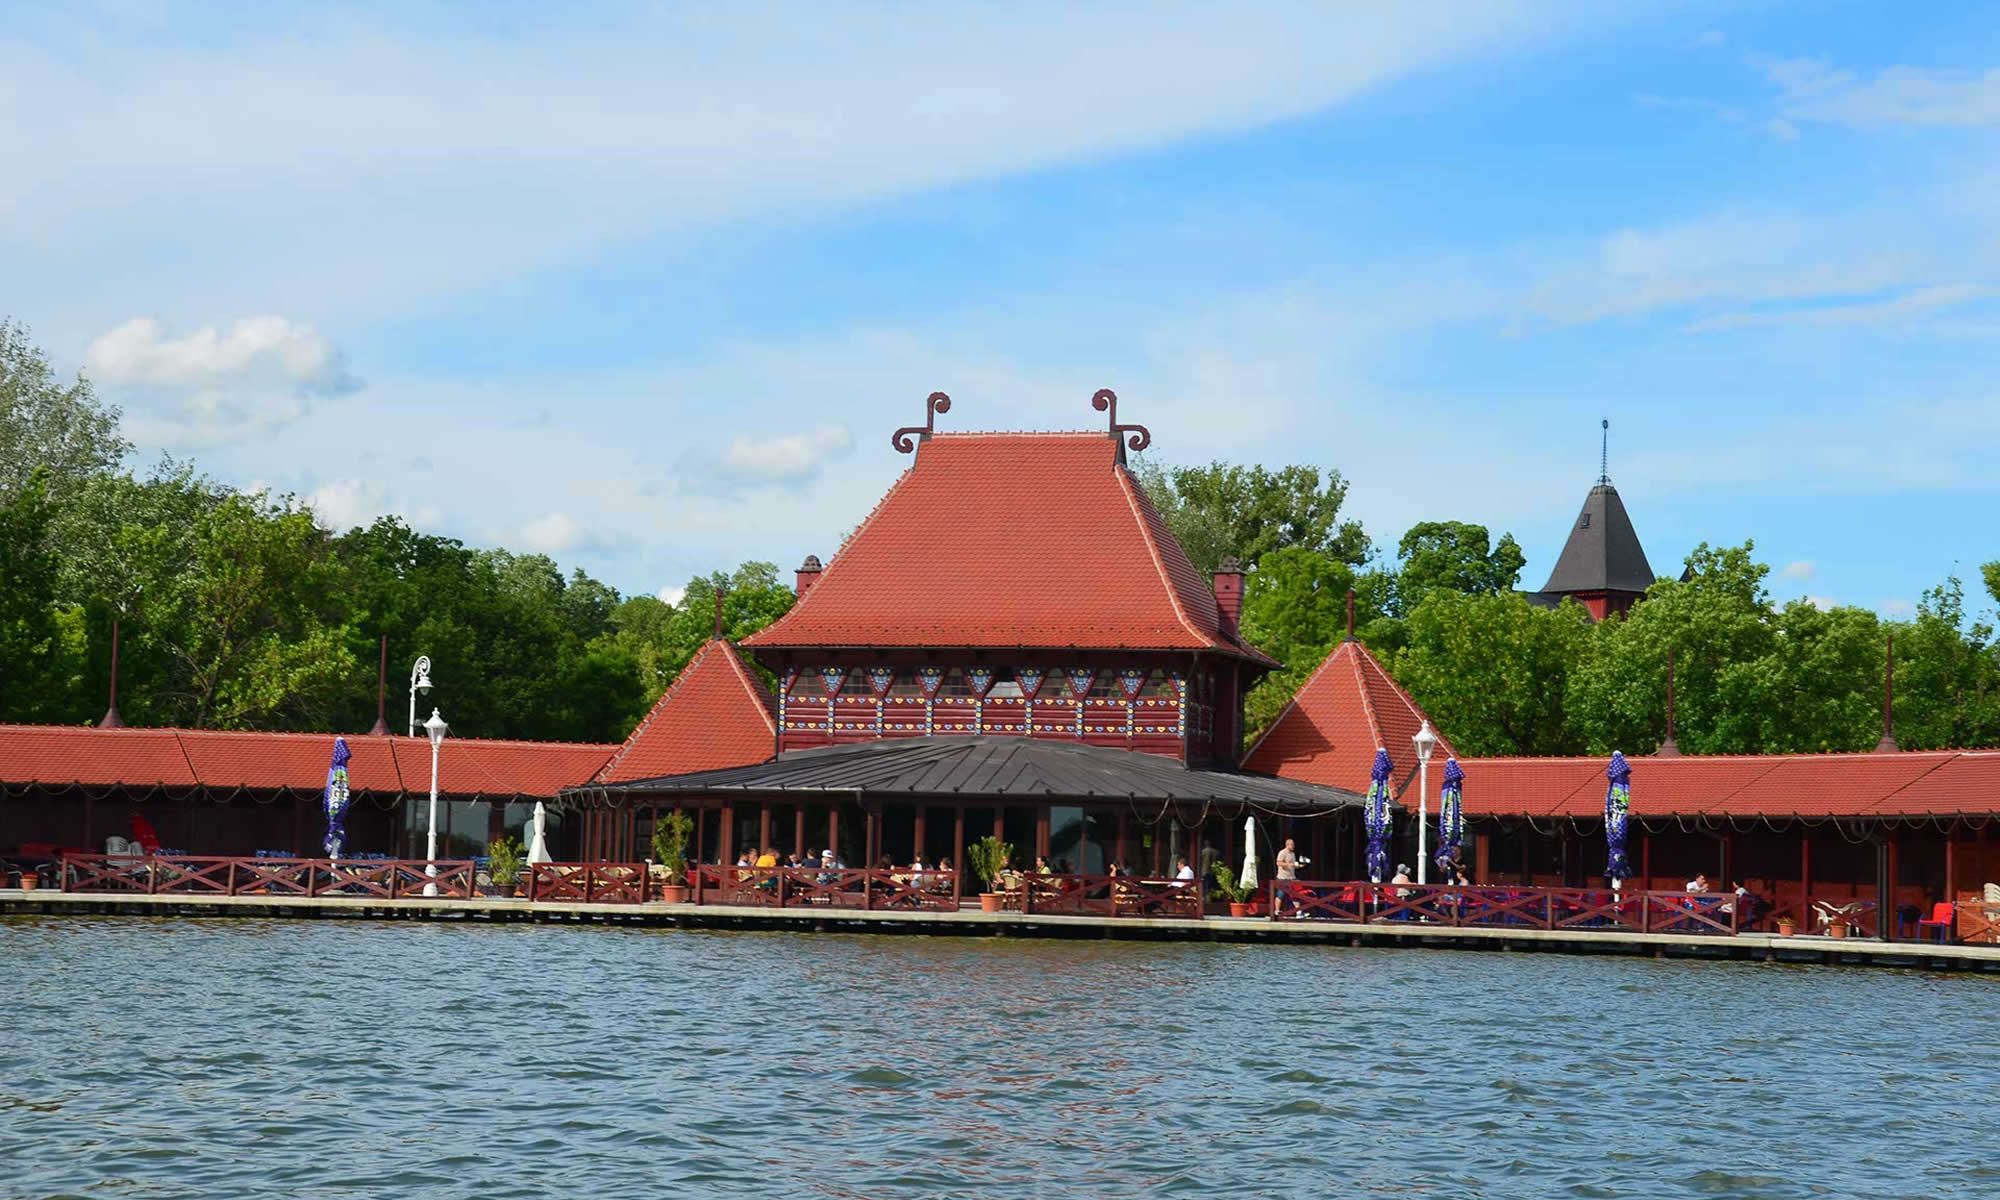 The Women's Lido building overlooks Lake Palic, in northern Serbia.